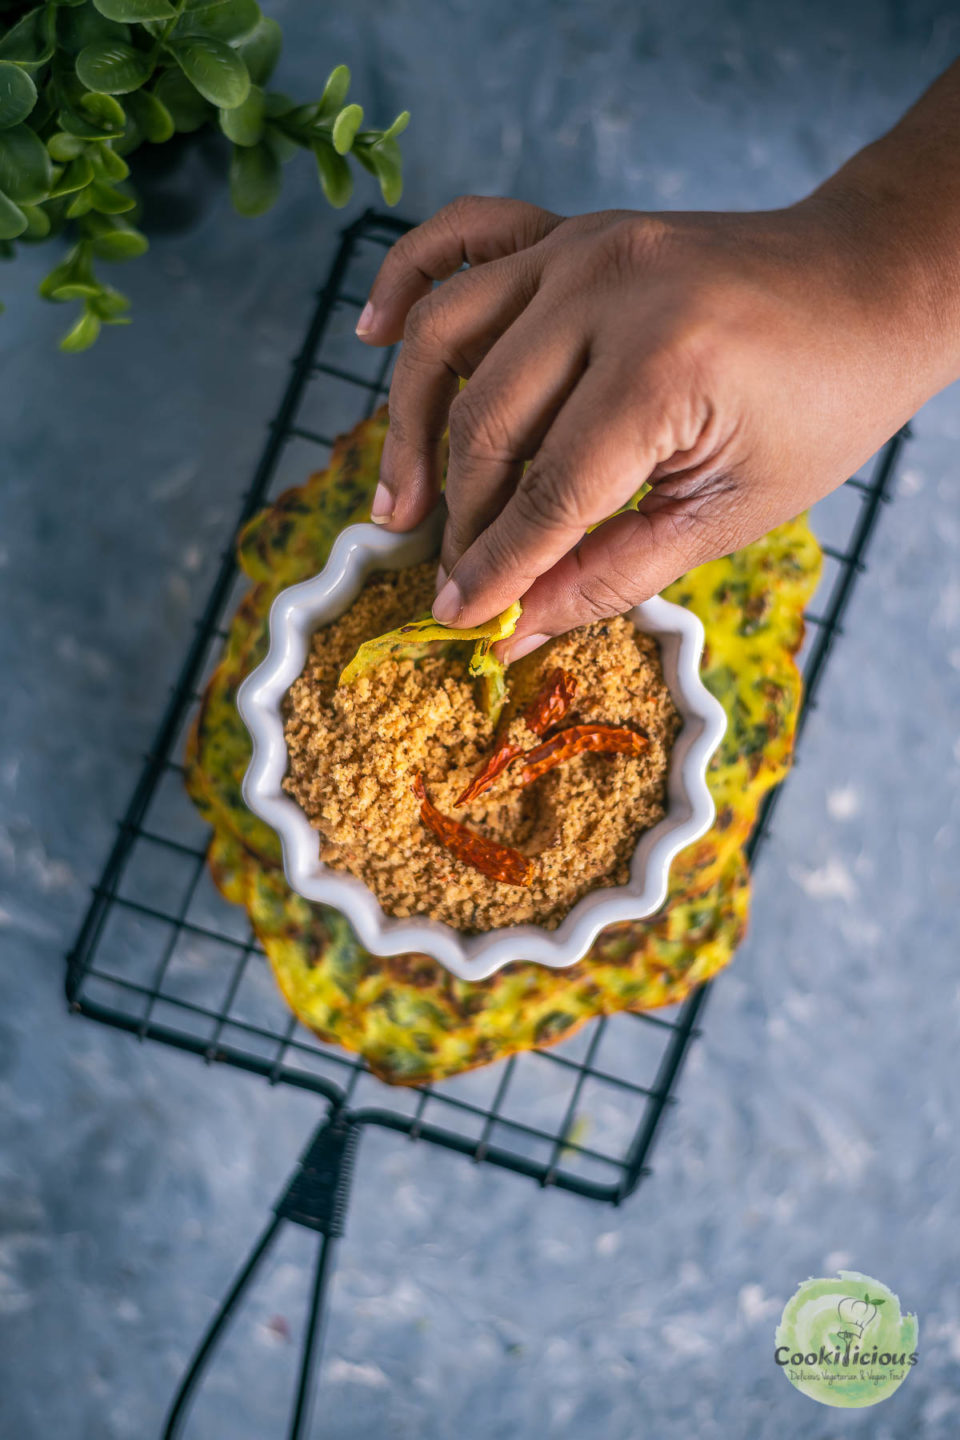 a hand holding a piece of methi ghavan and digging into a bowl of peanut chutney